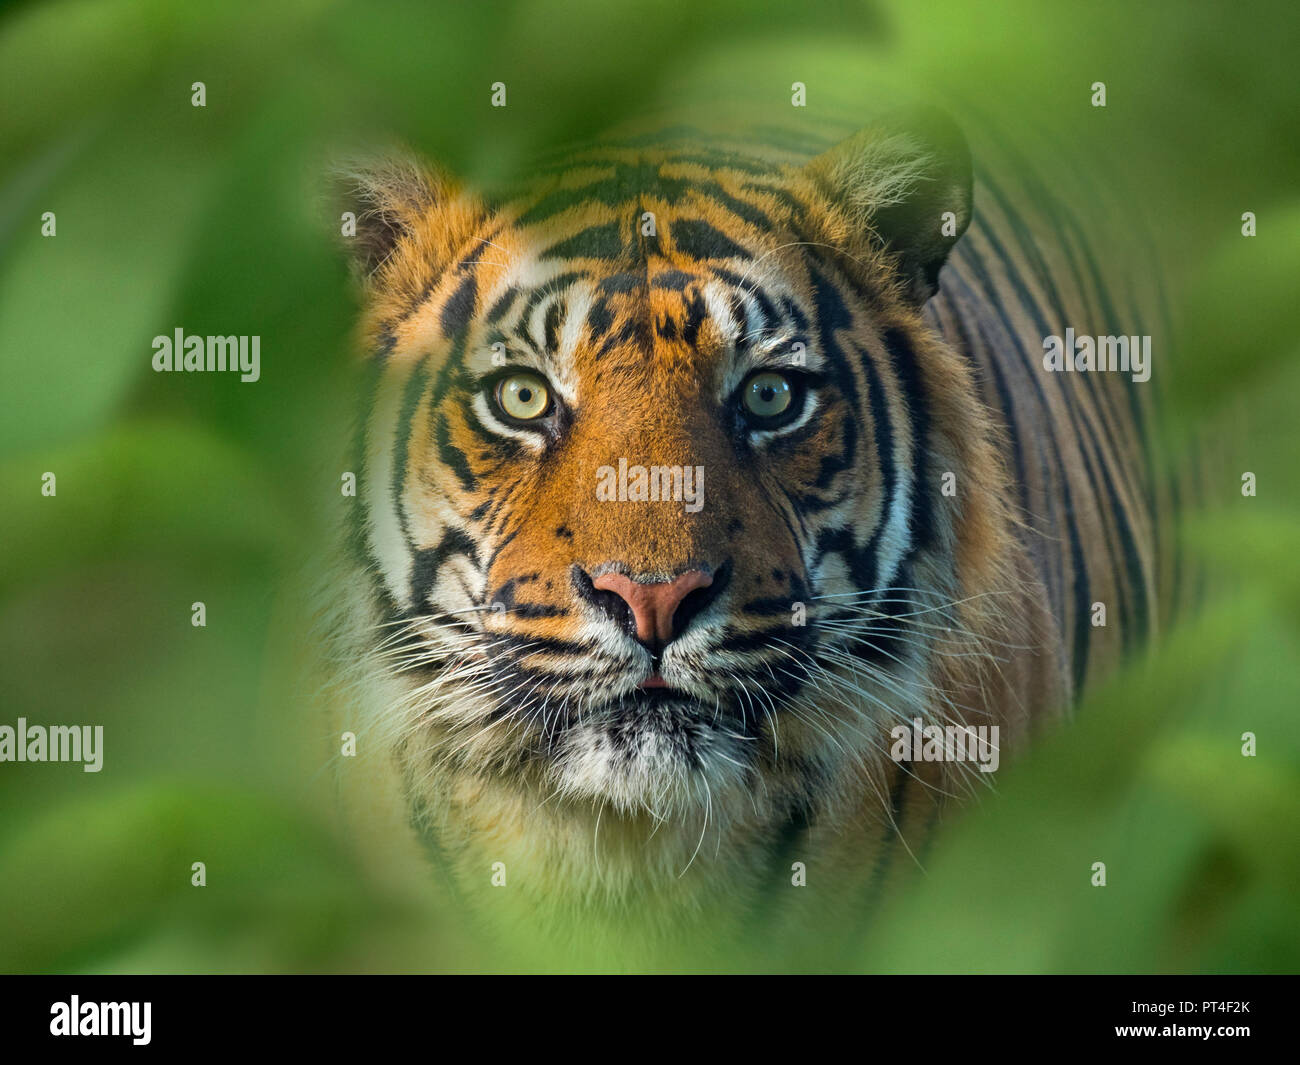 Sumatran tiger Panthera tigris sondaica CAPTIVE Stock Photo